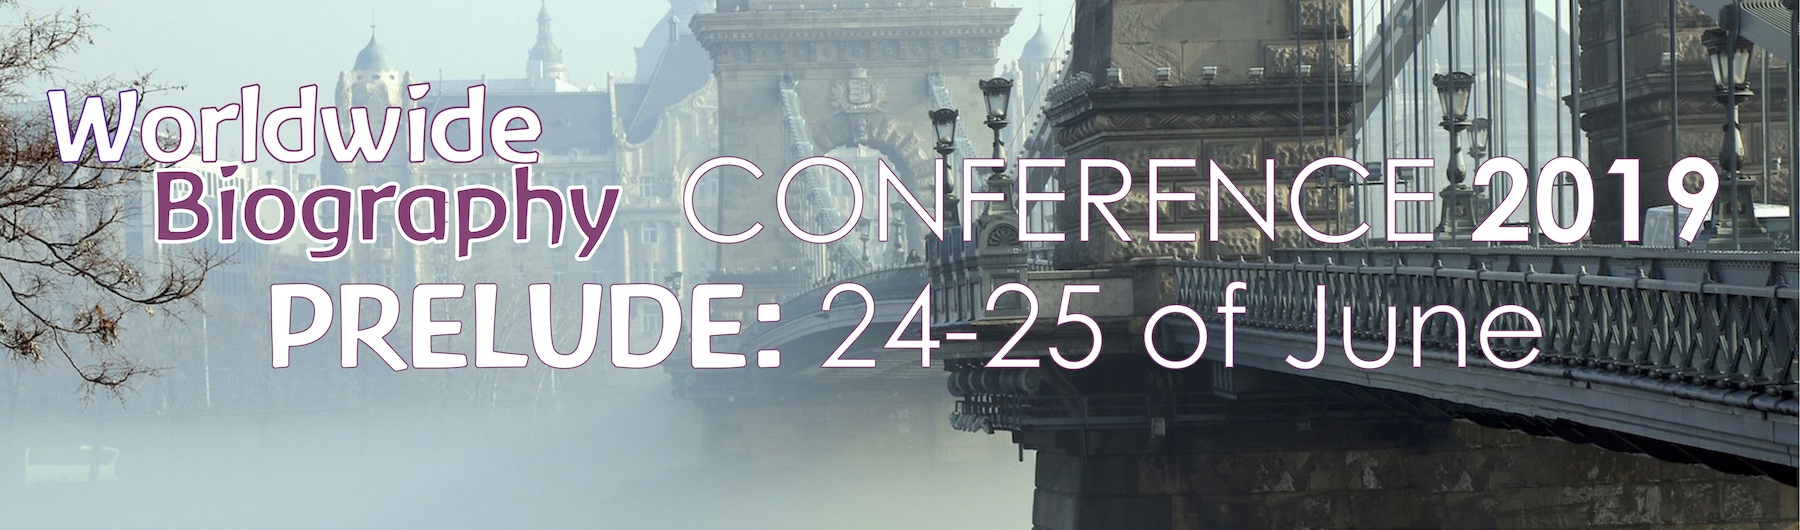 Worldwide Biography Conference Prelude | Budapest